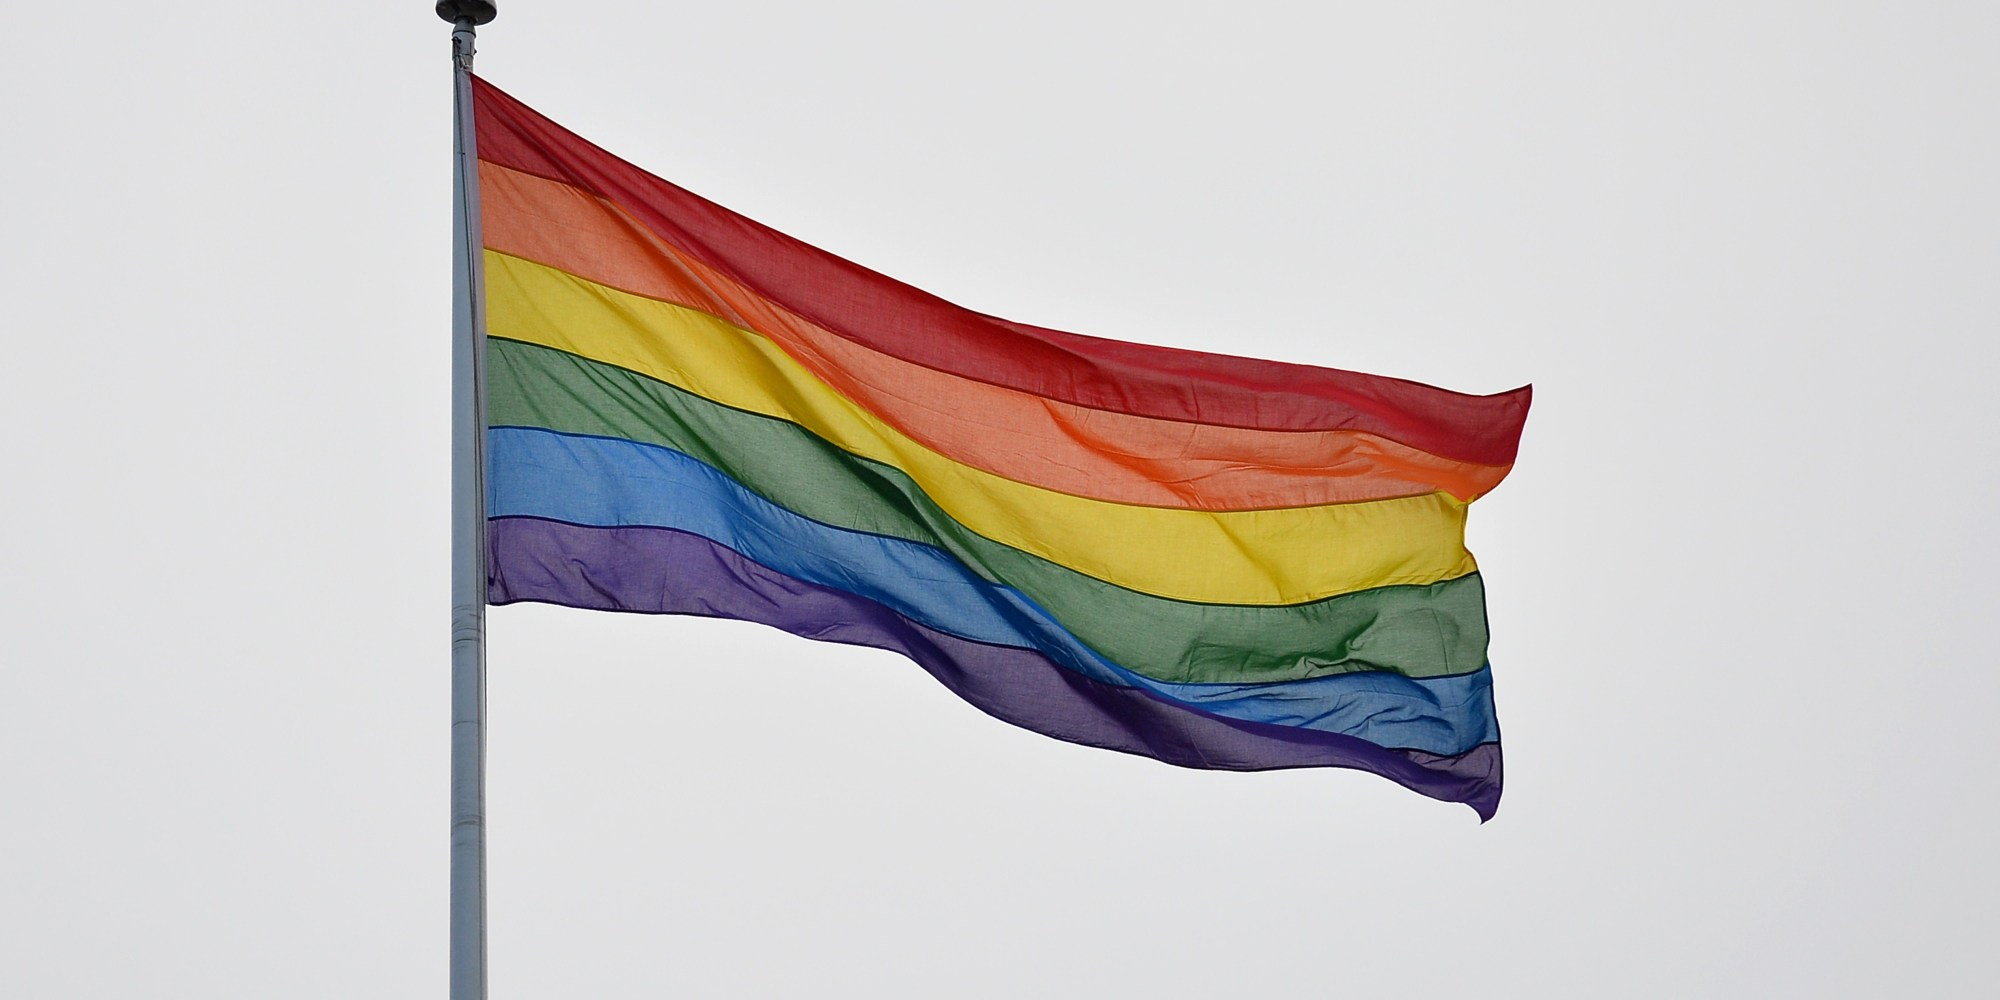 MoMA Acquires Iconic Rainbow Flag Just In Time For LGBT